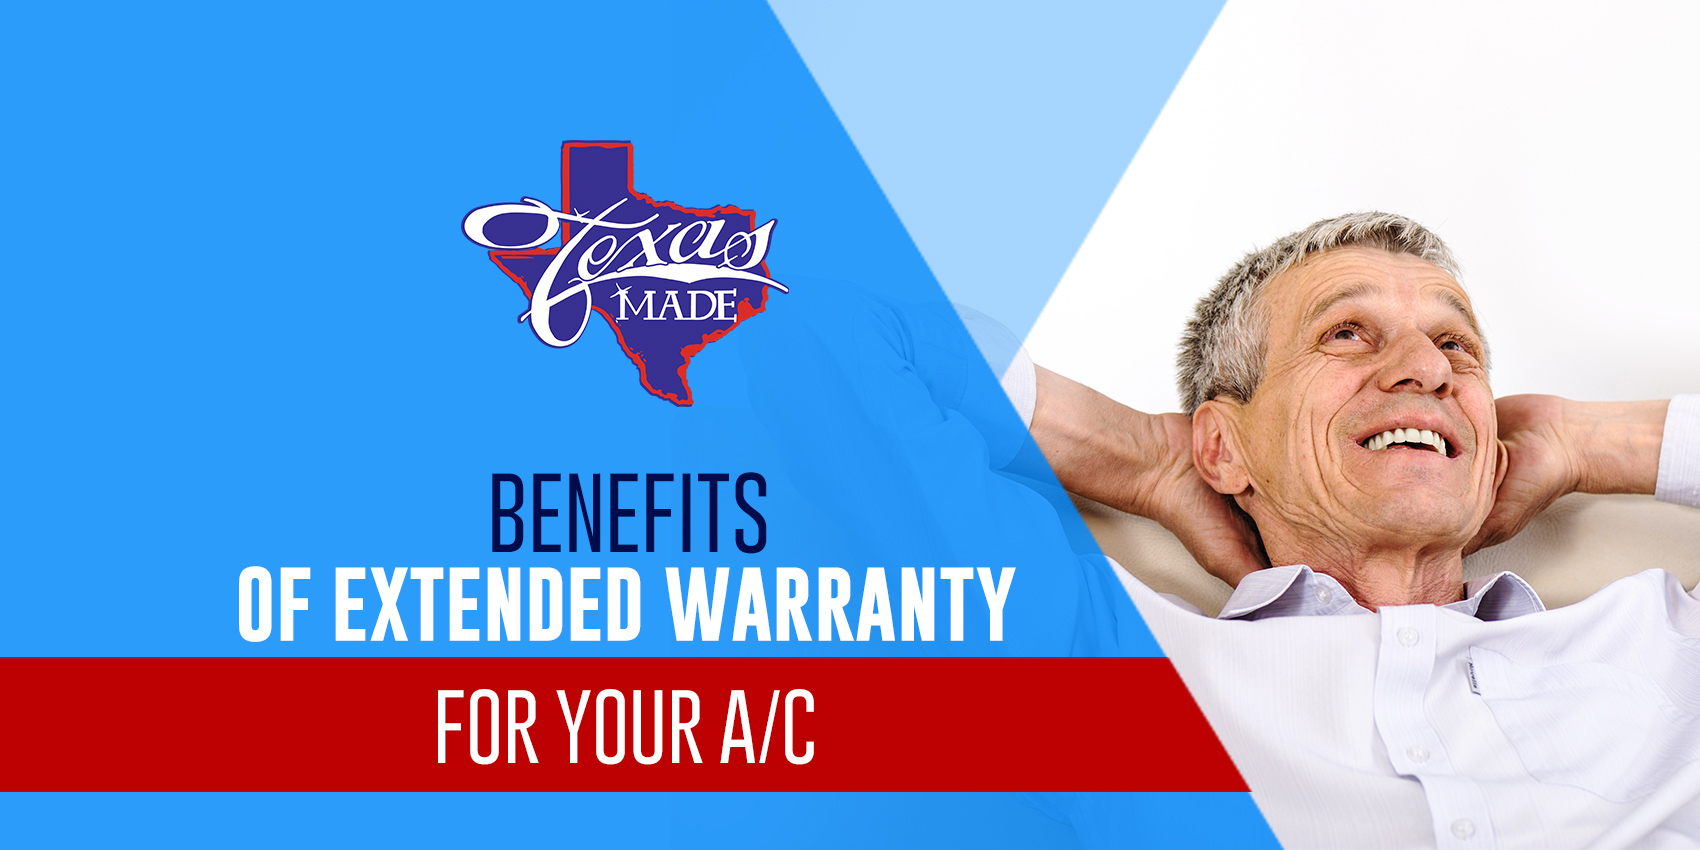 Benefits of Extended Warranty for Your A/C